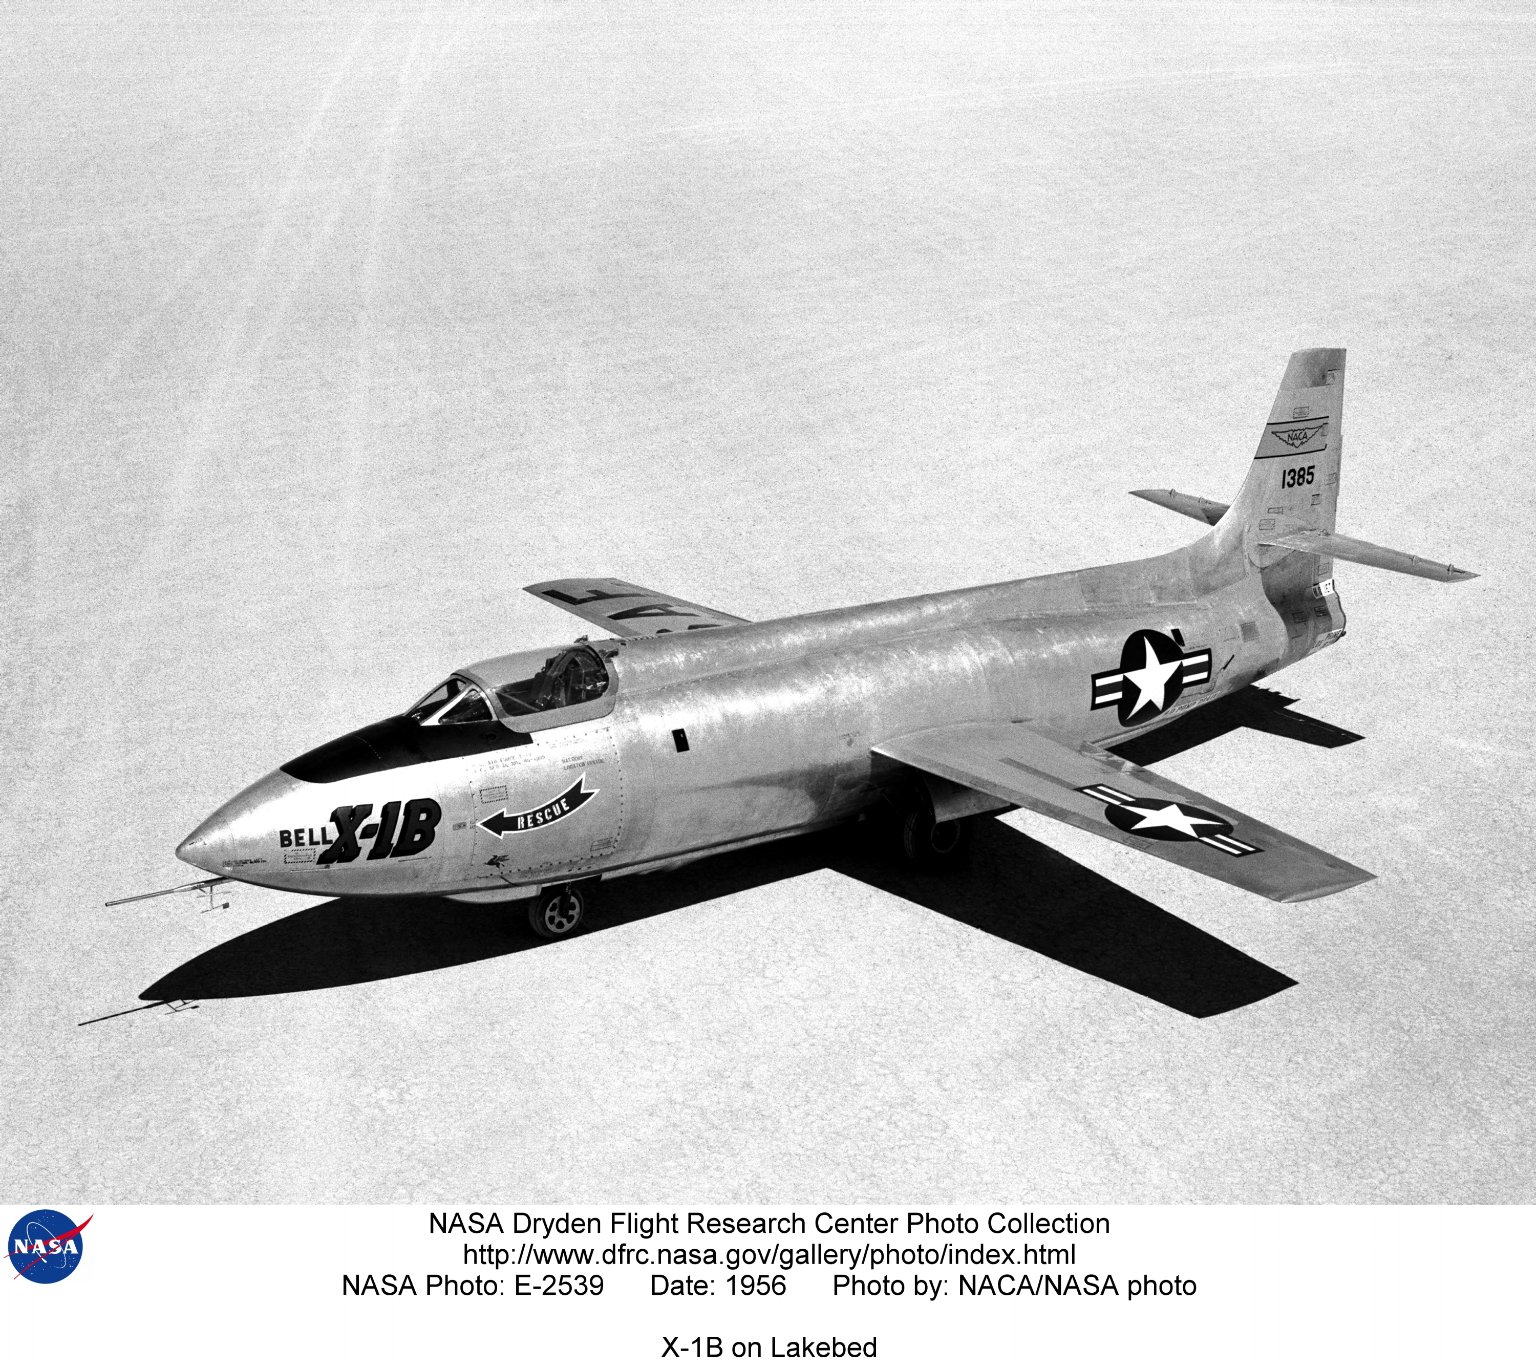 X-1B on Lakebed